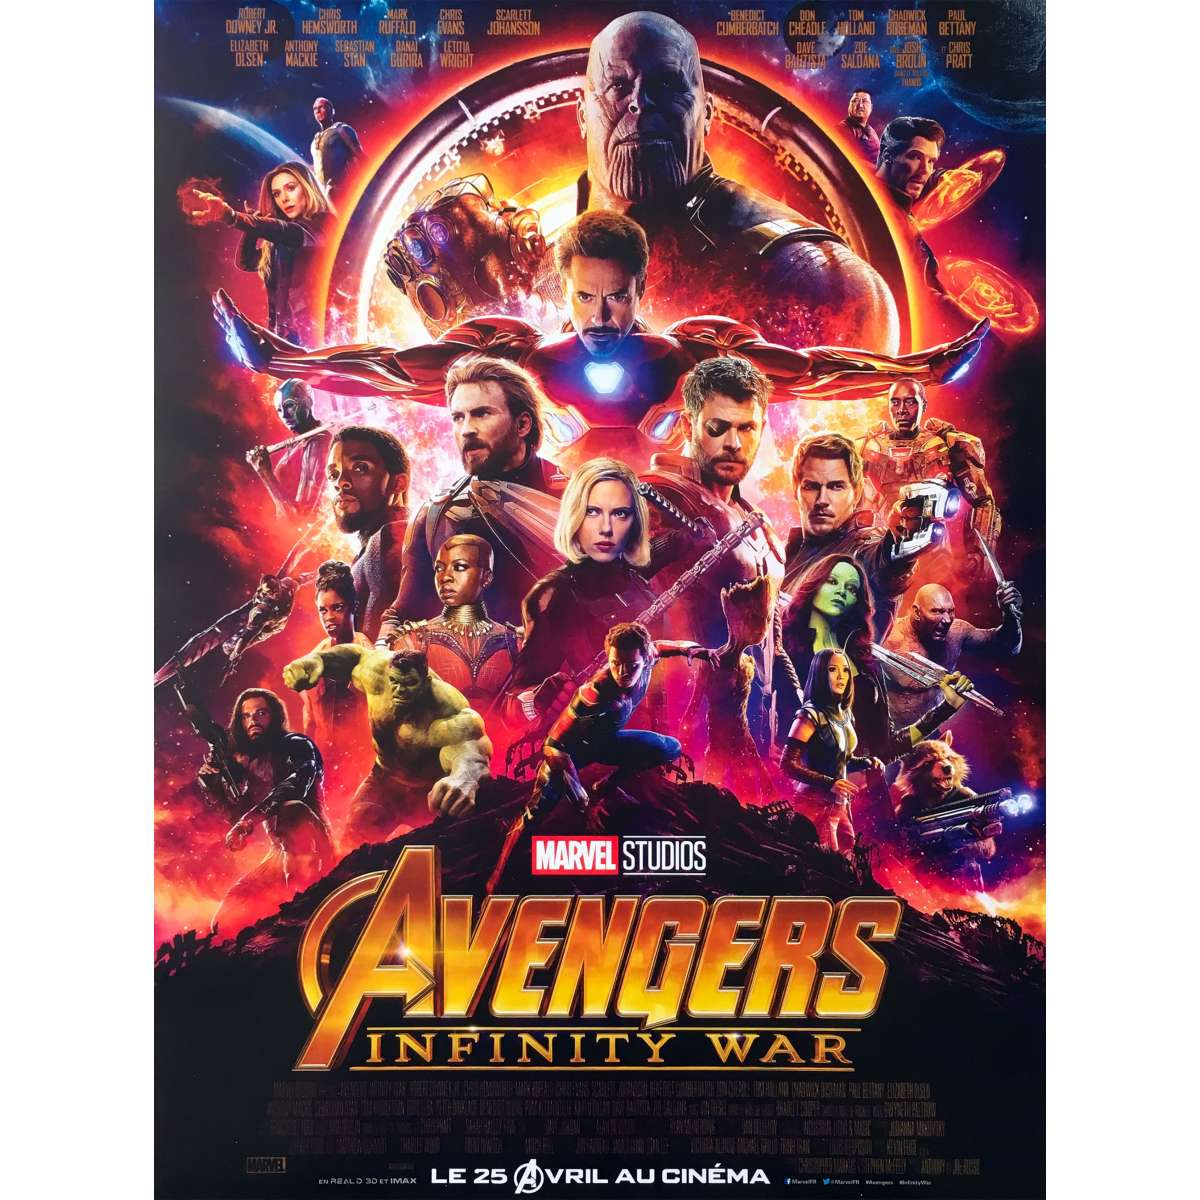 avengers infinity war original movie poster 15x21 in 2018 anthony russo robert downey jr